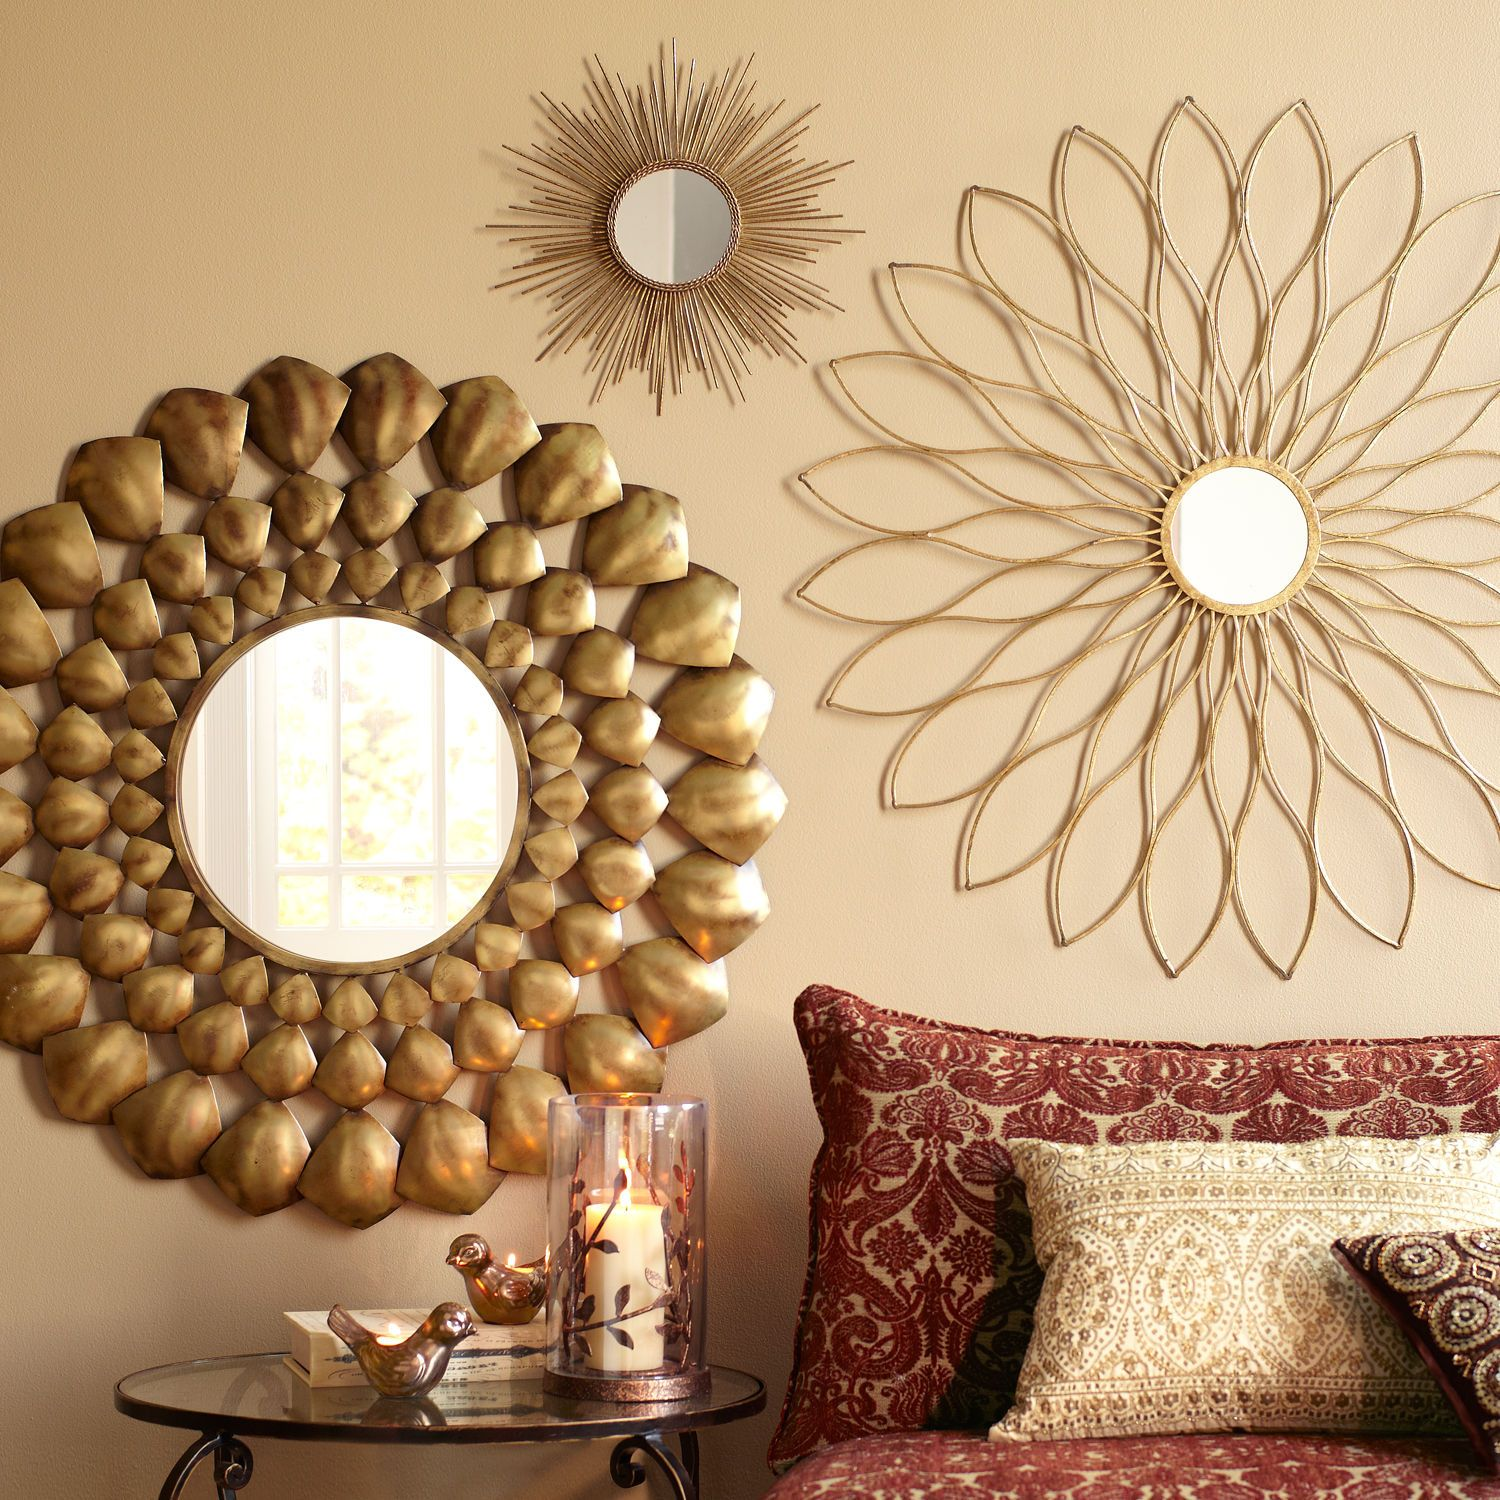 Petite Gold Burst Round Mirror | Wall decor, Petite and Walls